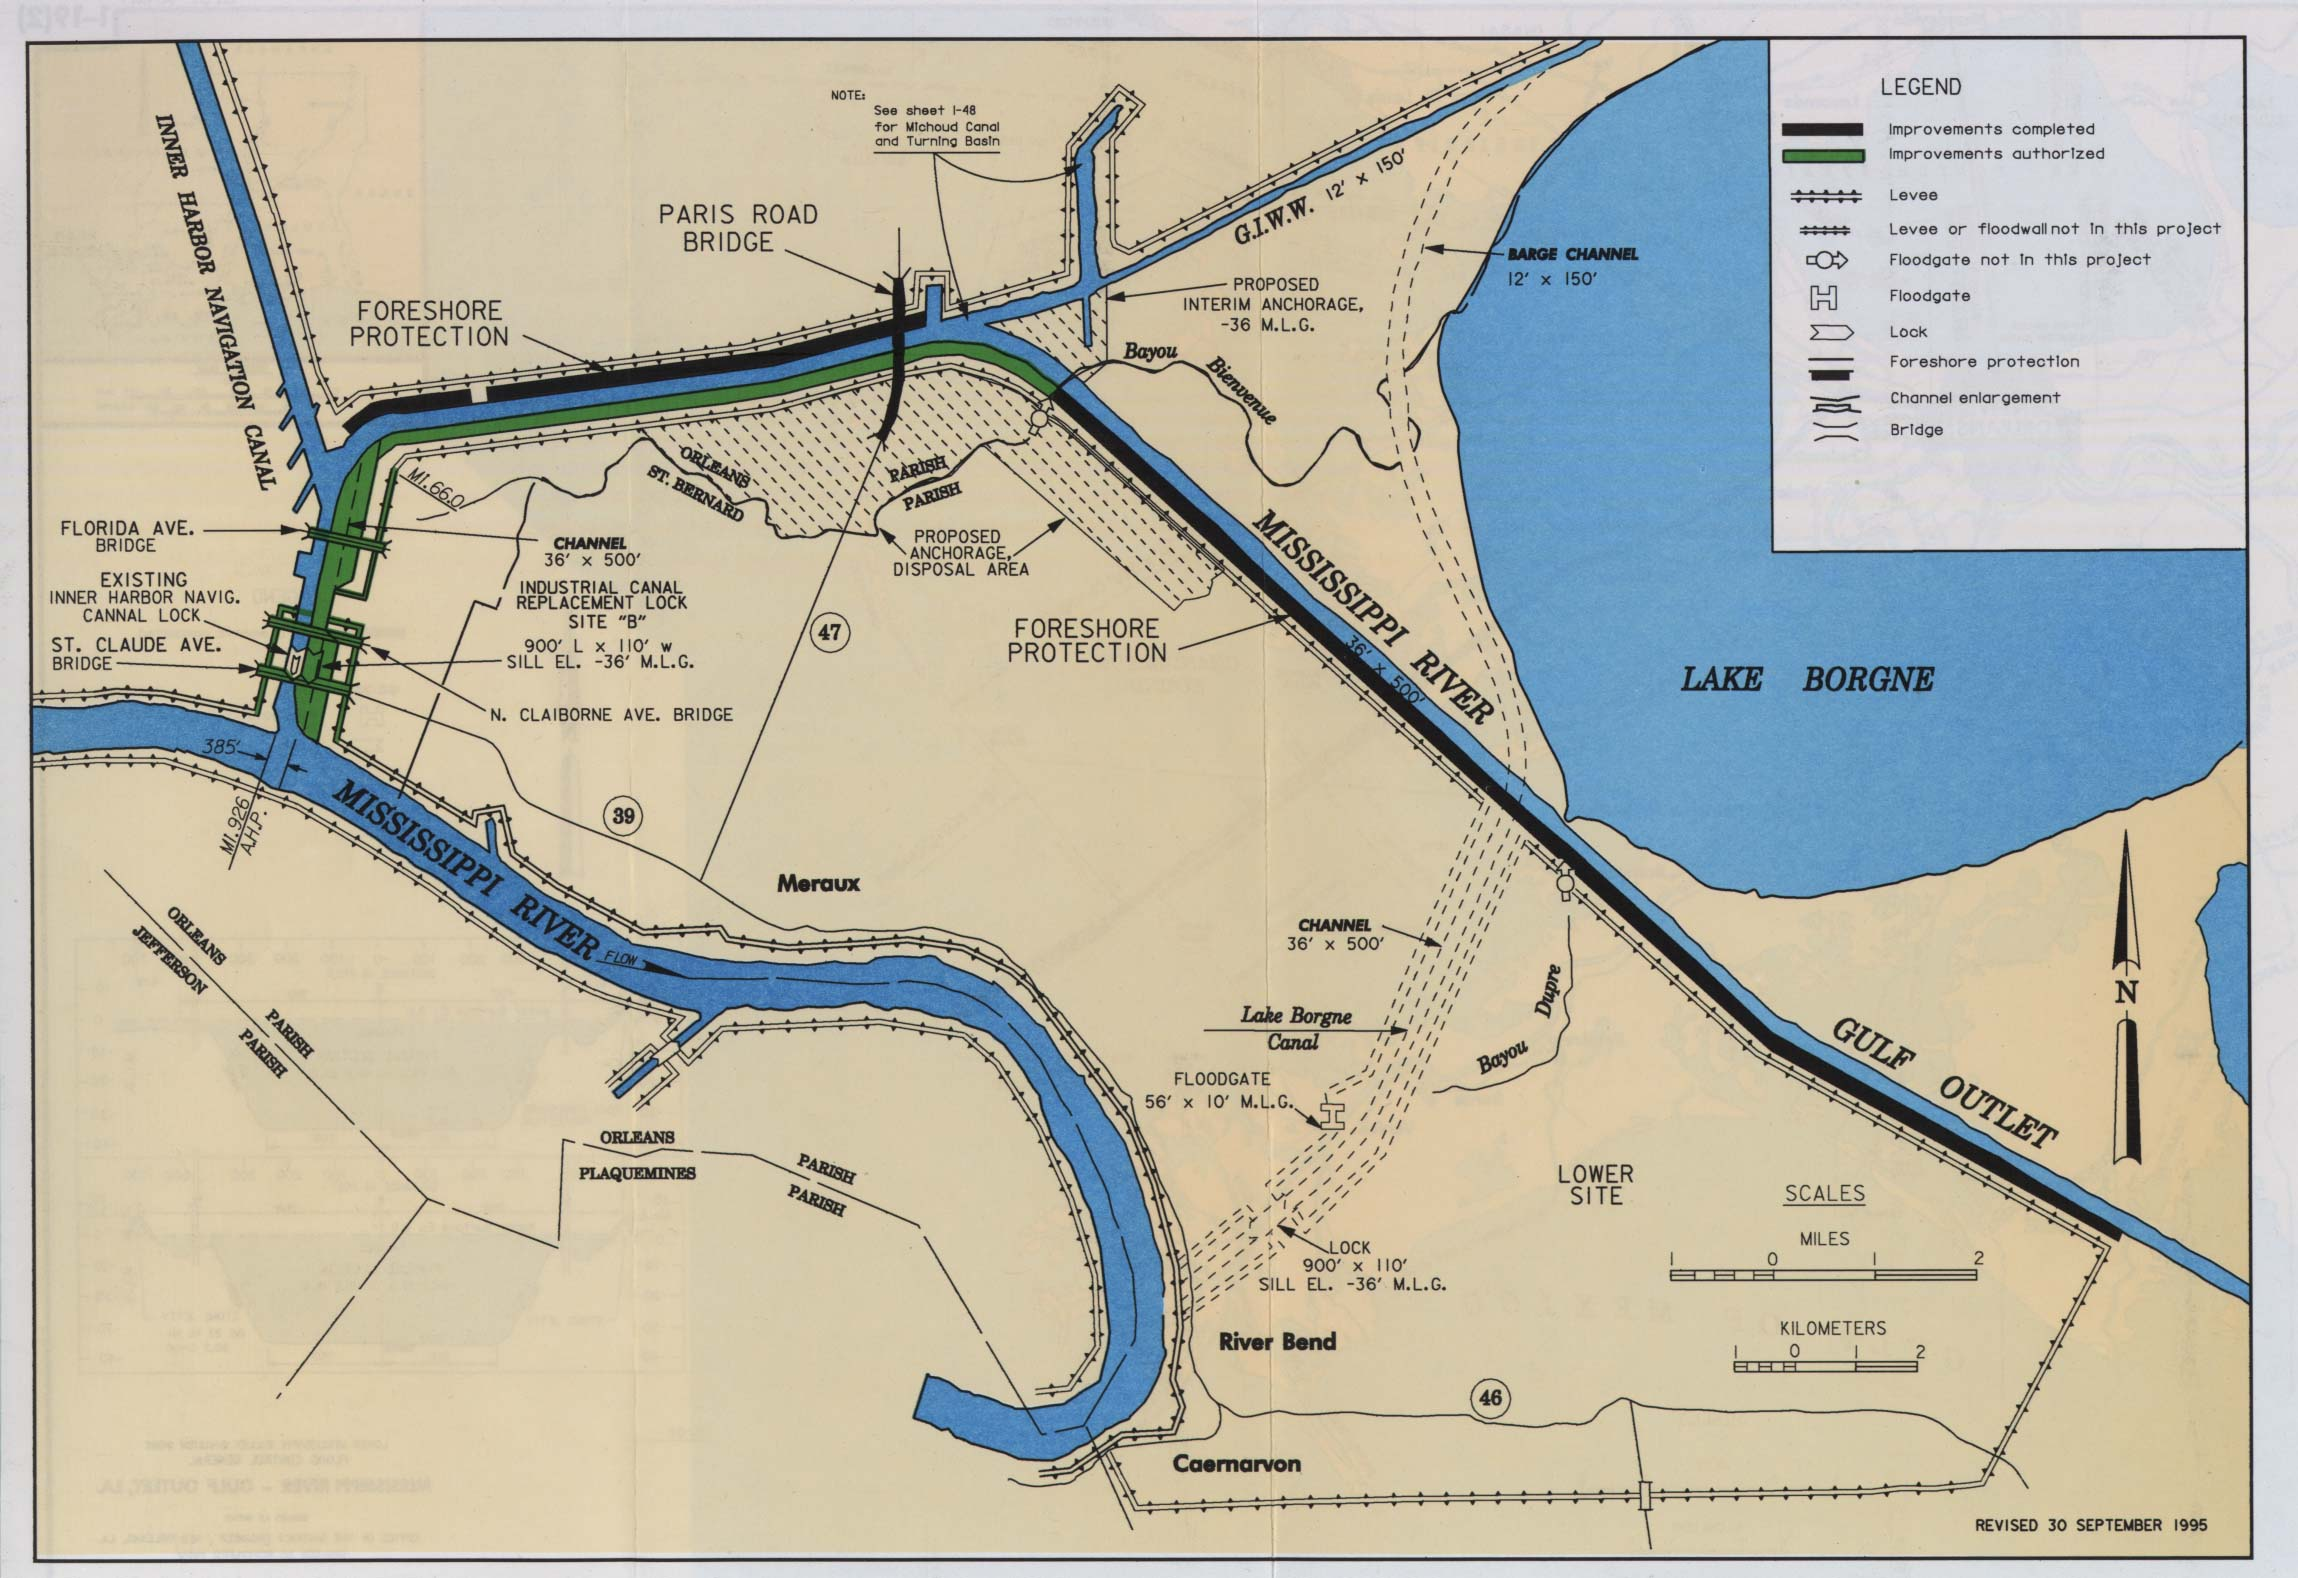 mississippi river gulf outlet map River And Harbor Act Project Maps mississippi river gulf outlet map